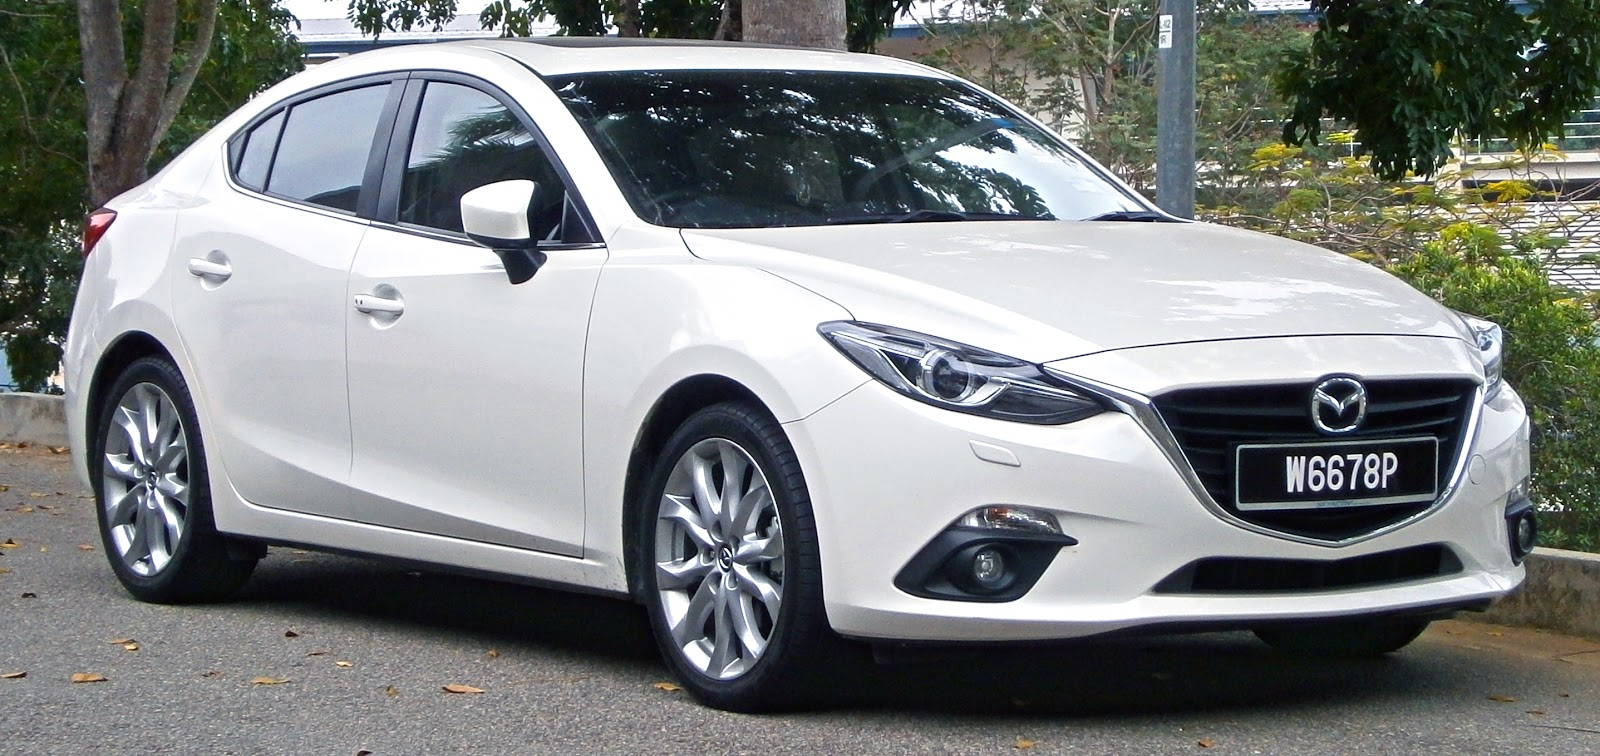 2014_Mazda_3_Sedan_(BM)_2.0_SkyActiv_(CBU)_4-door_sedan_(19711323581).jpg